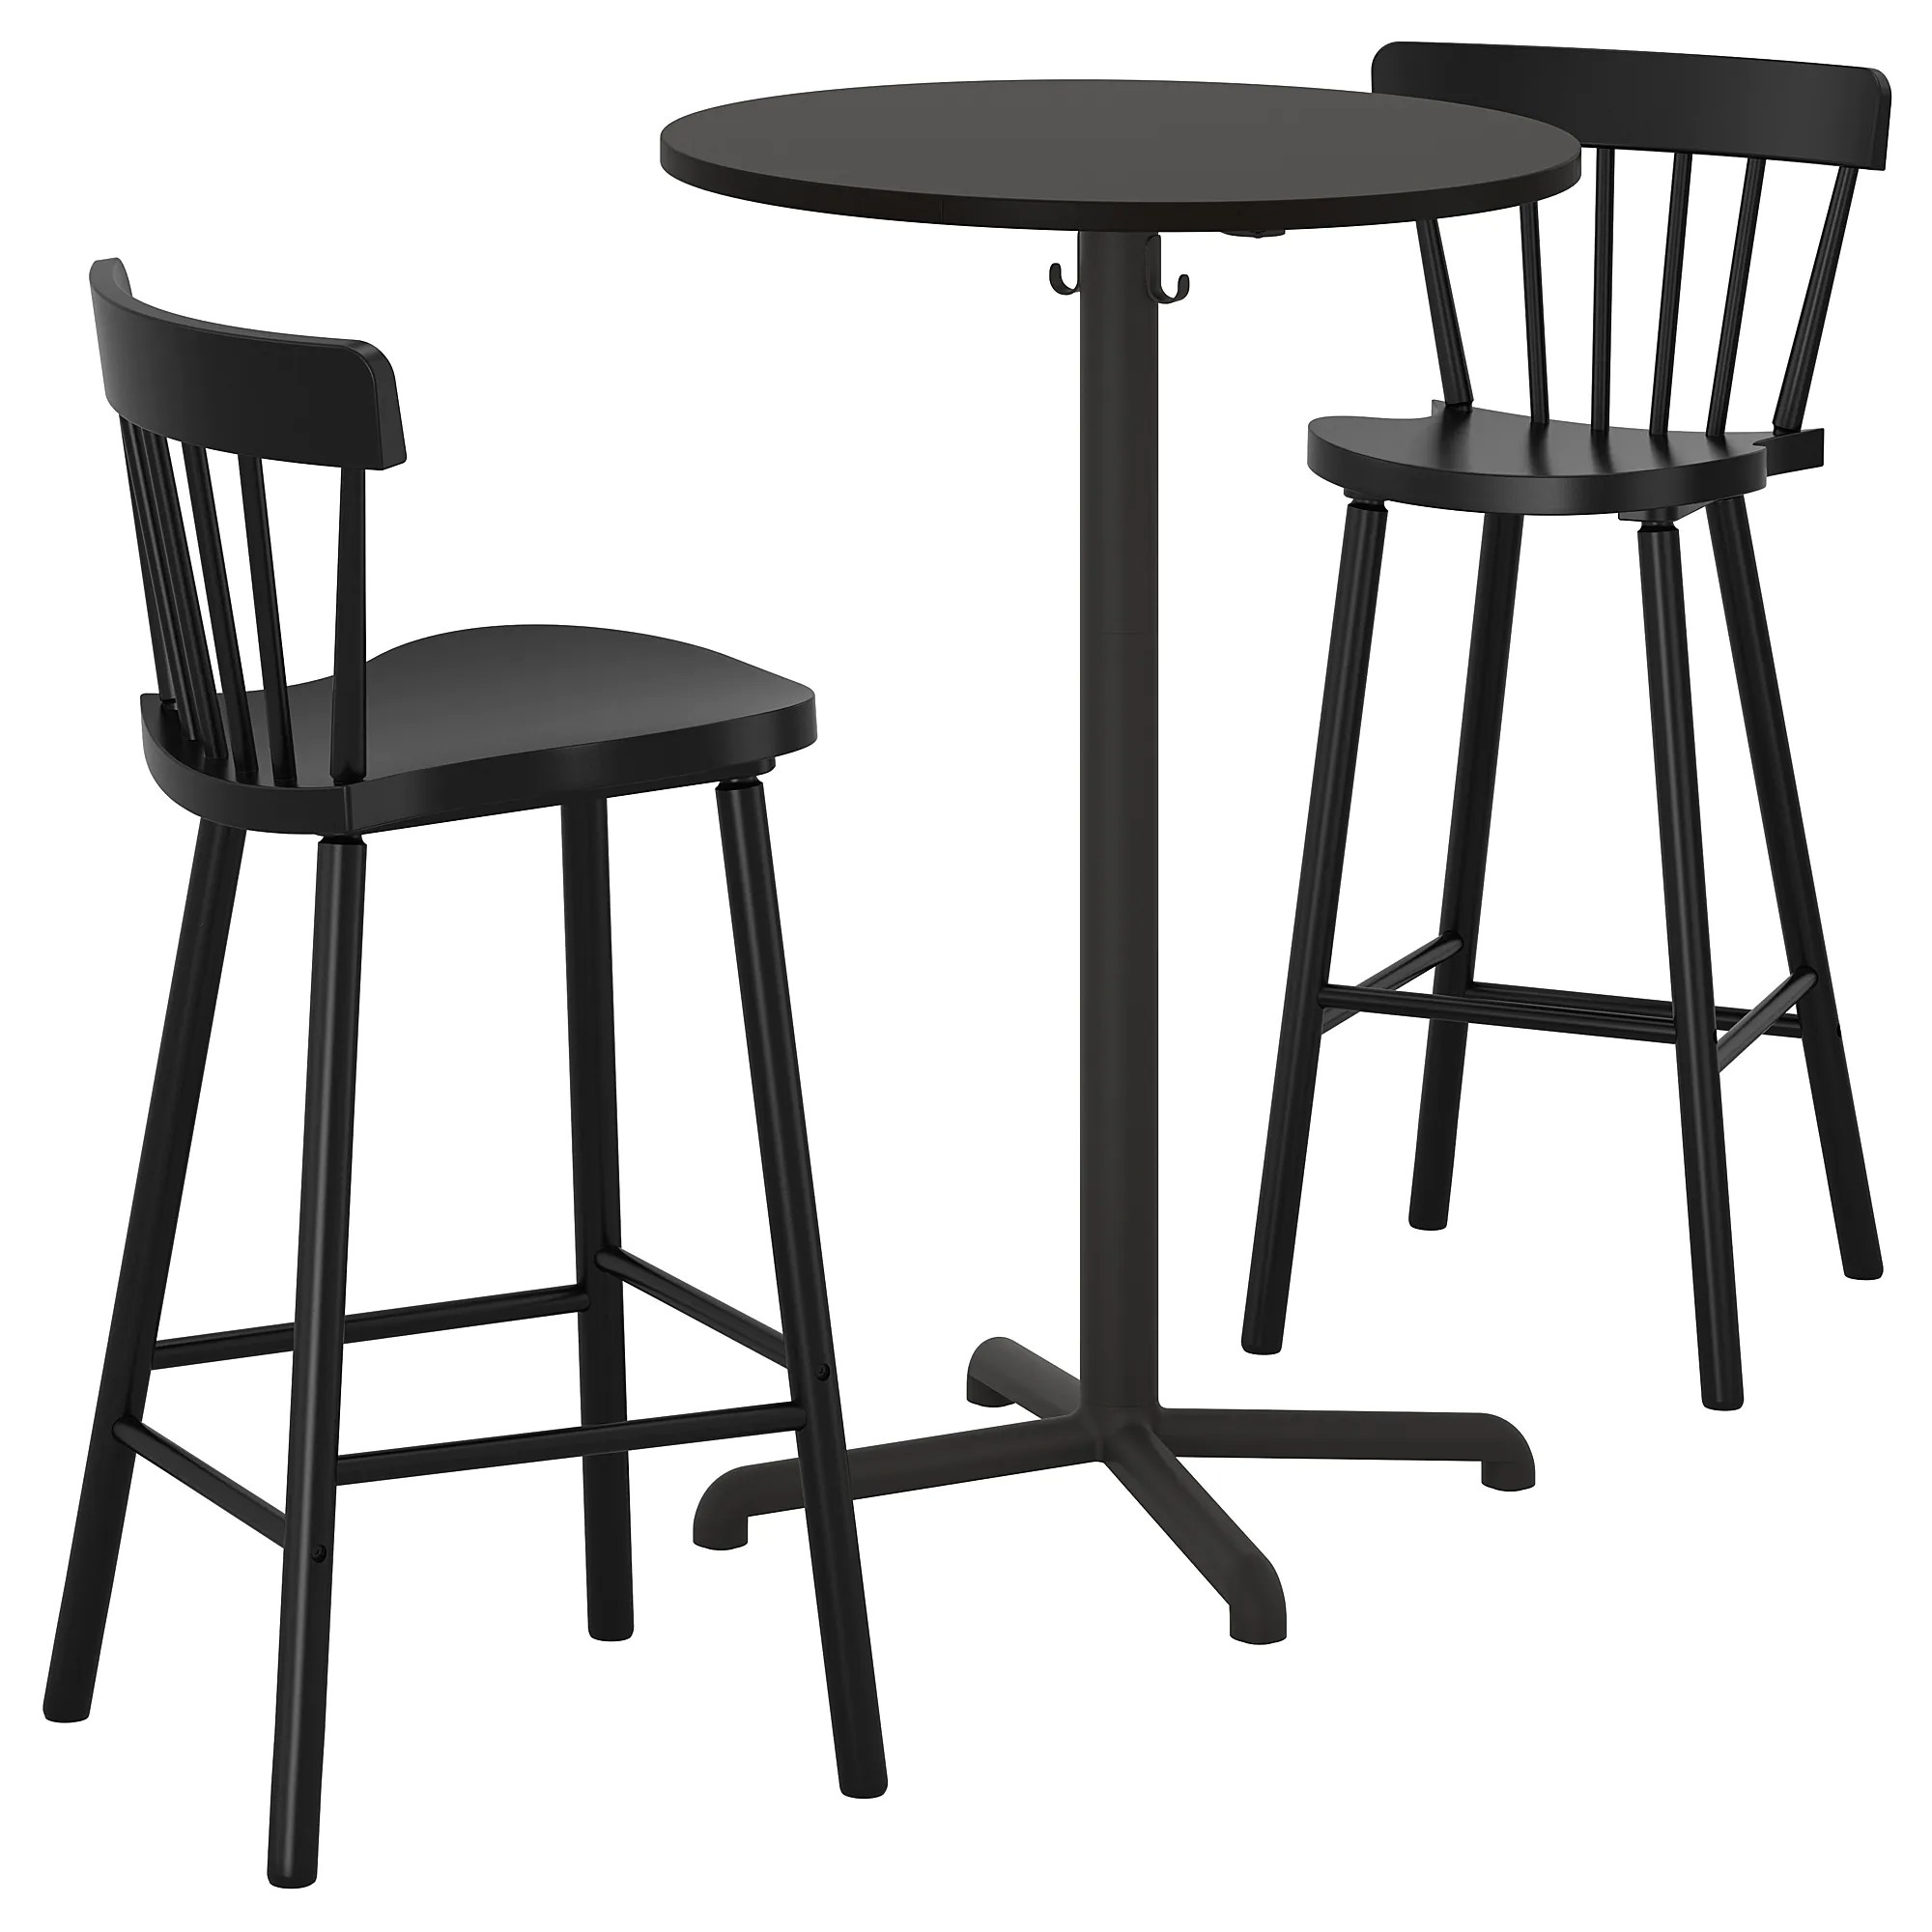 Table And Bar Stools Stensele Norraryd Bar Table And 2 Bar Stools Anthracite Anthracite Black